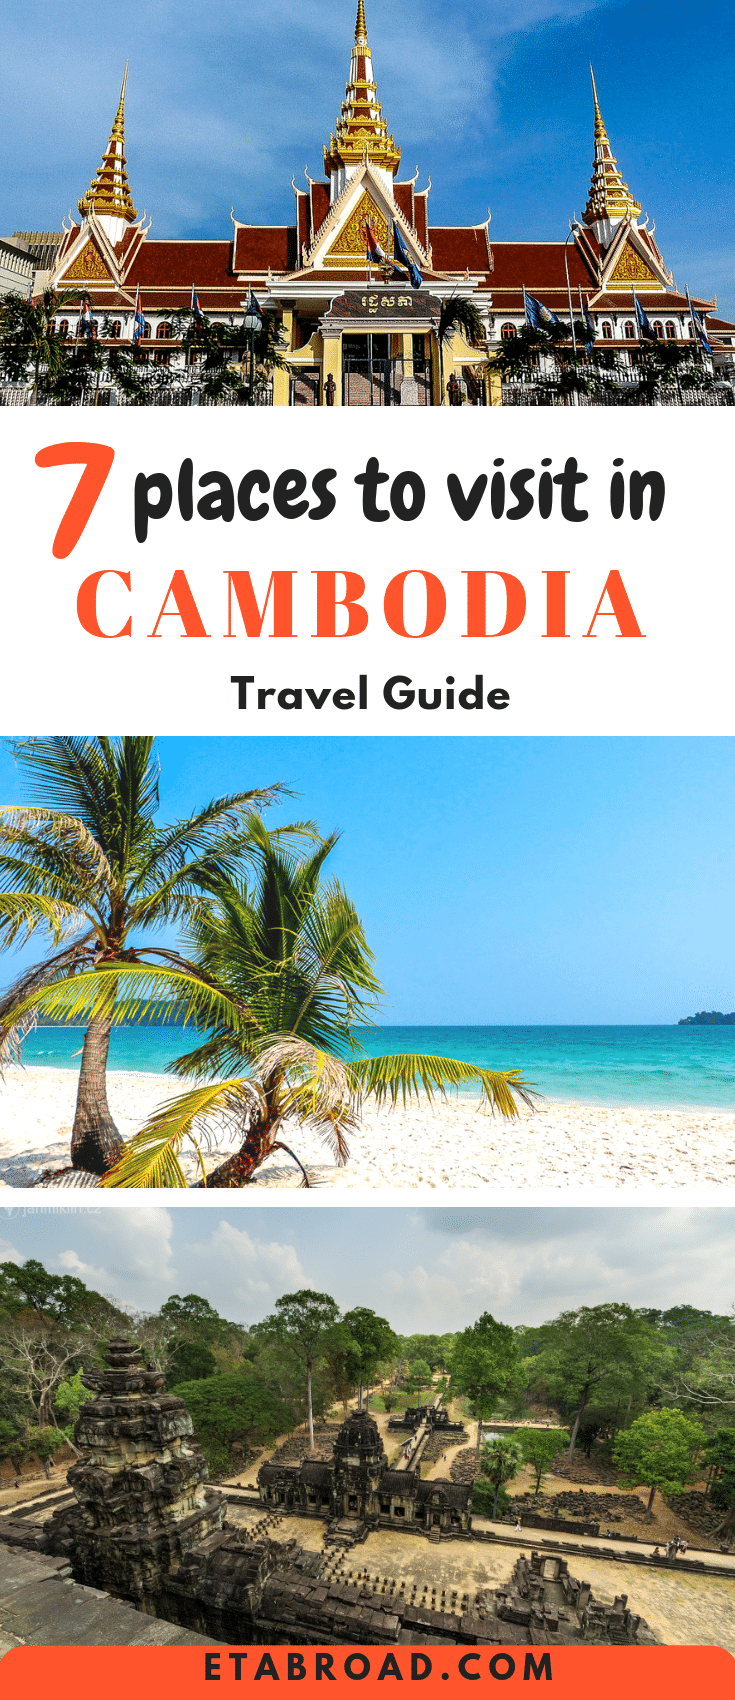 Camobia Travel Guide | What to see in Camobia | must-see places | Best things to see in Camobia | Best Places to Visit in Camobia | what to do in Cambodia